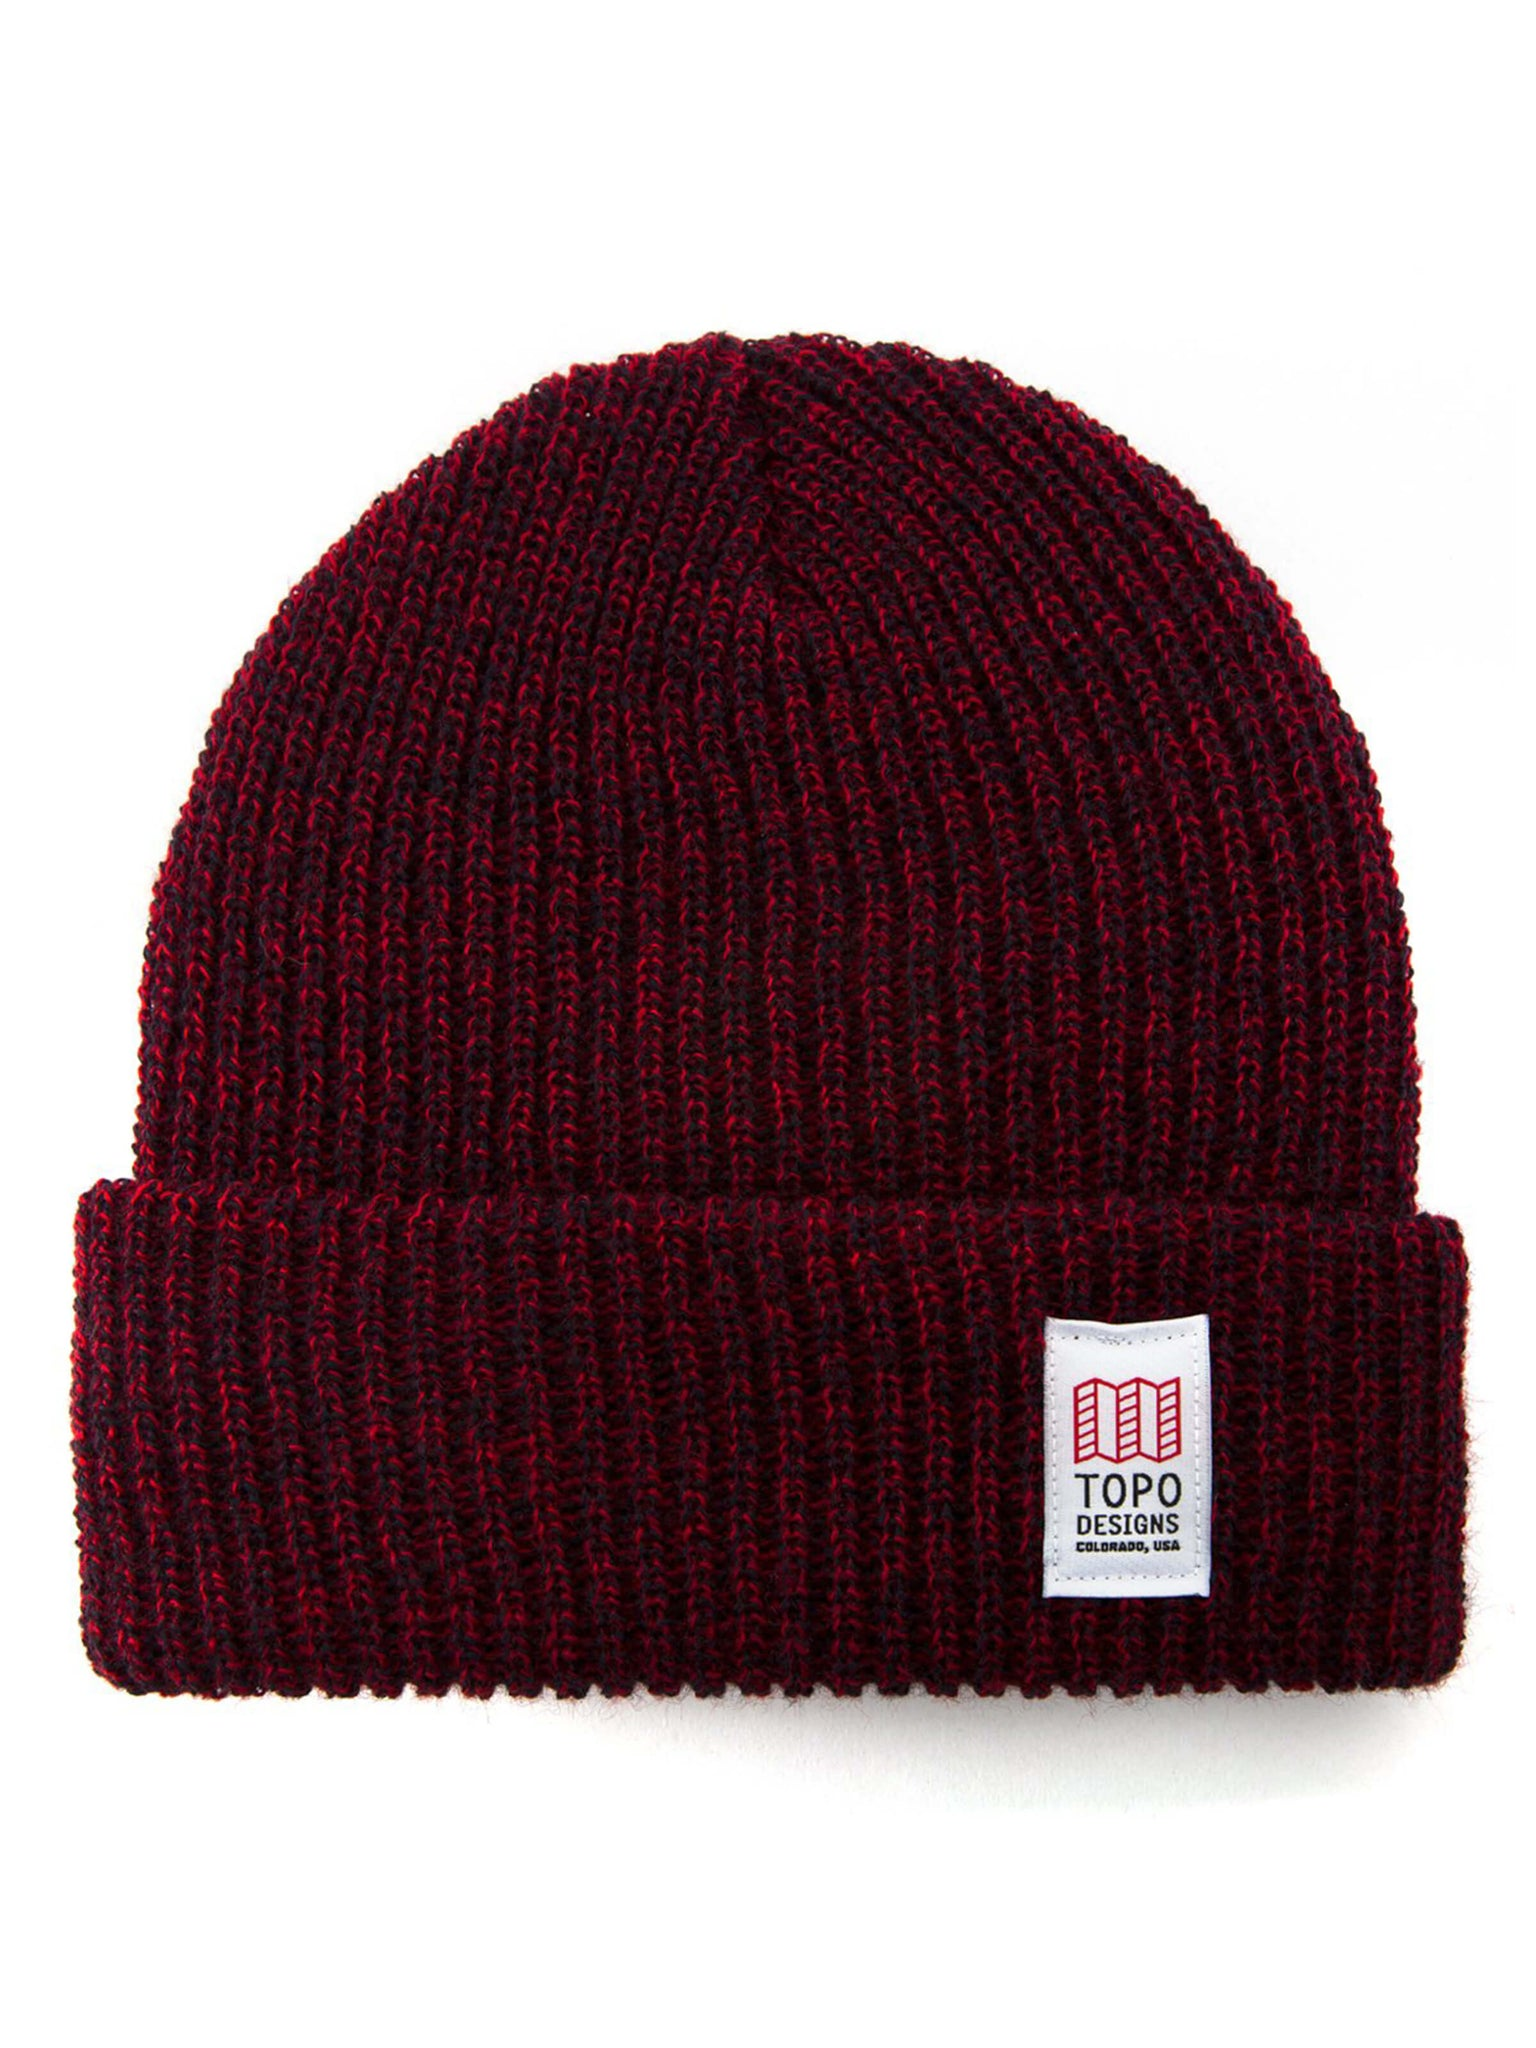 Topo Designs Heavy Knit Watch Cap - Navy / Red Marled